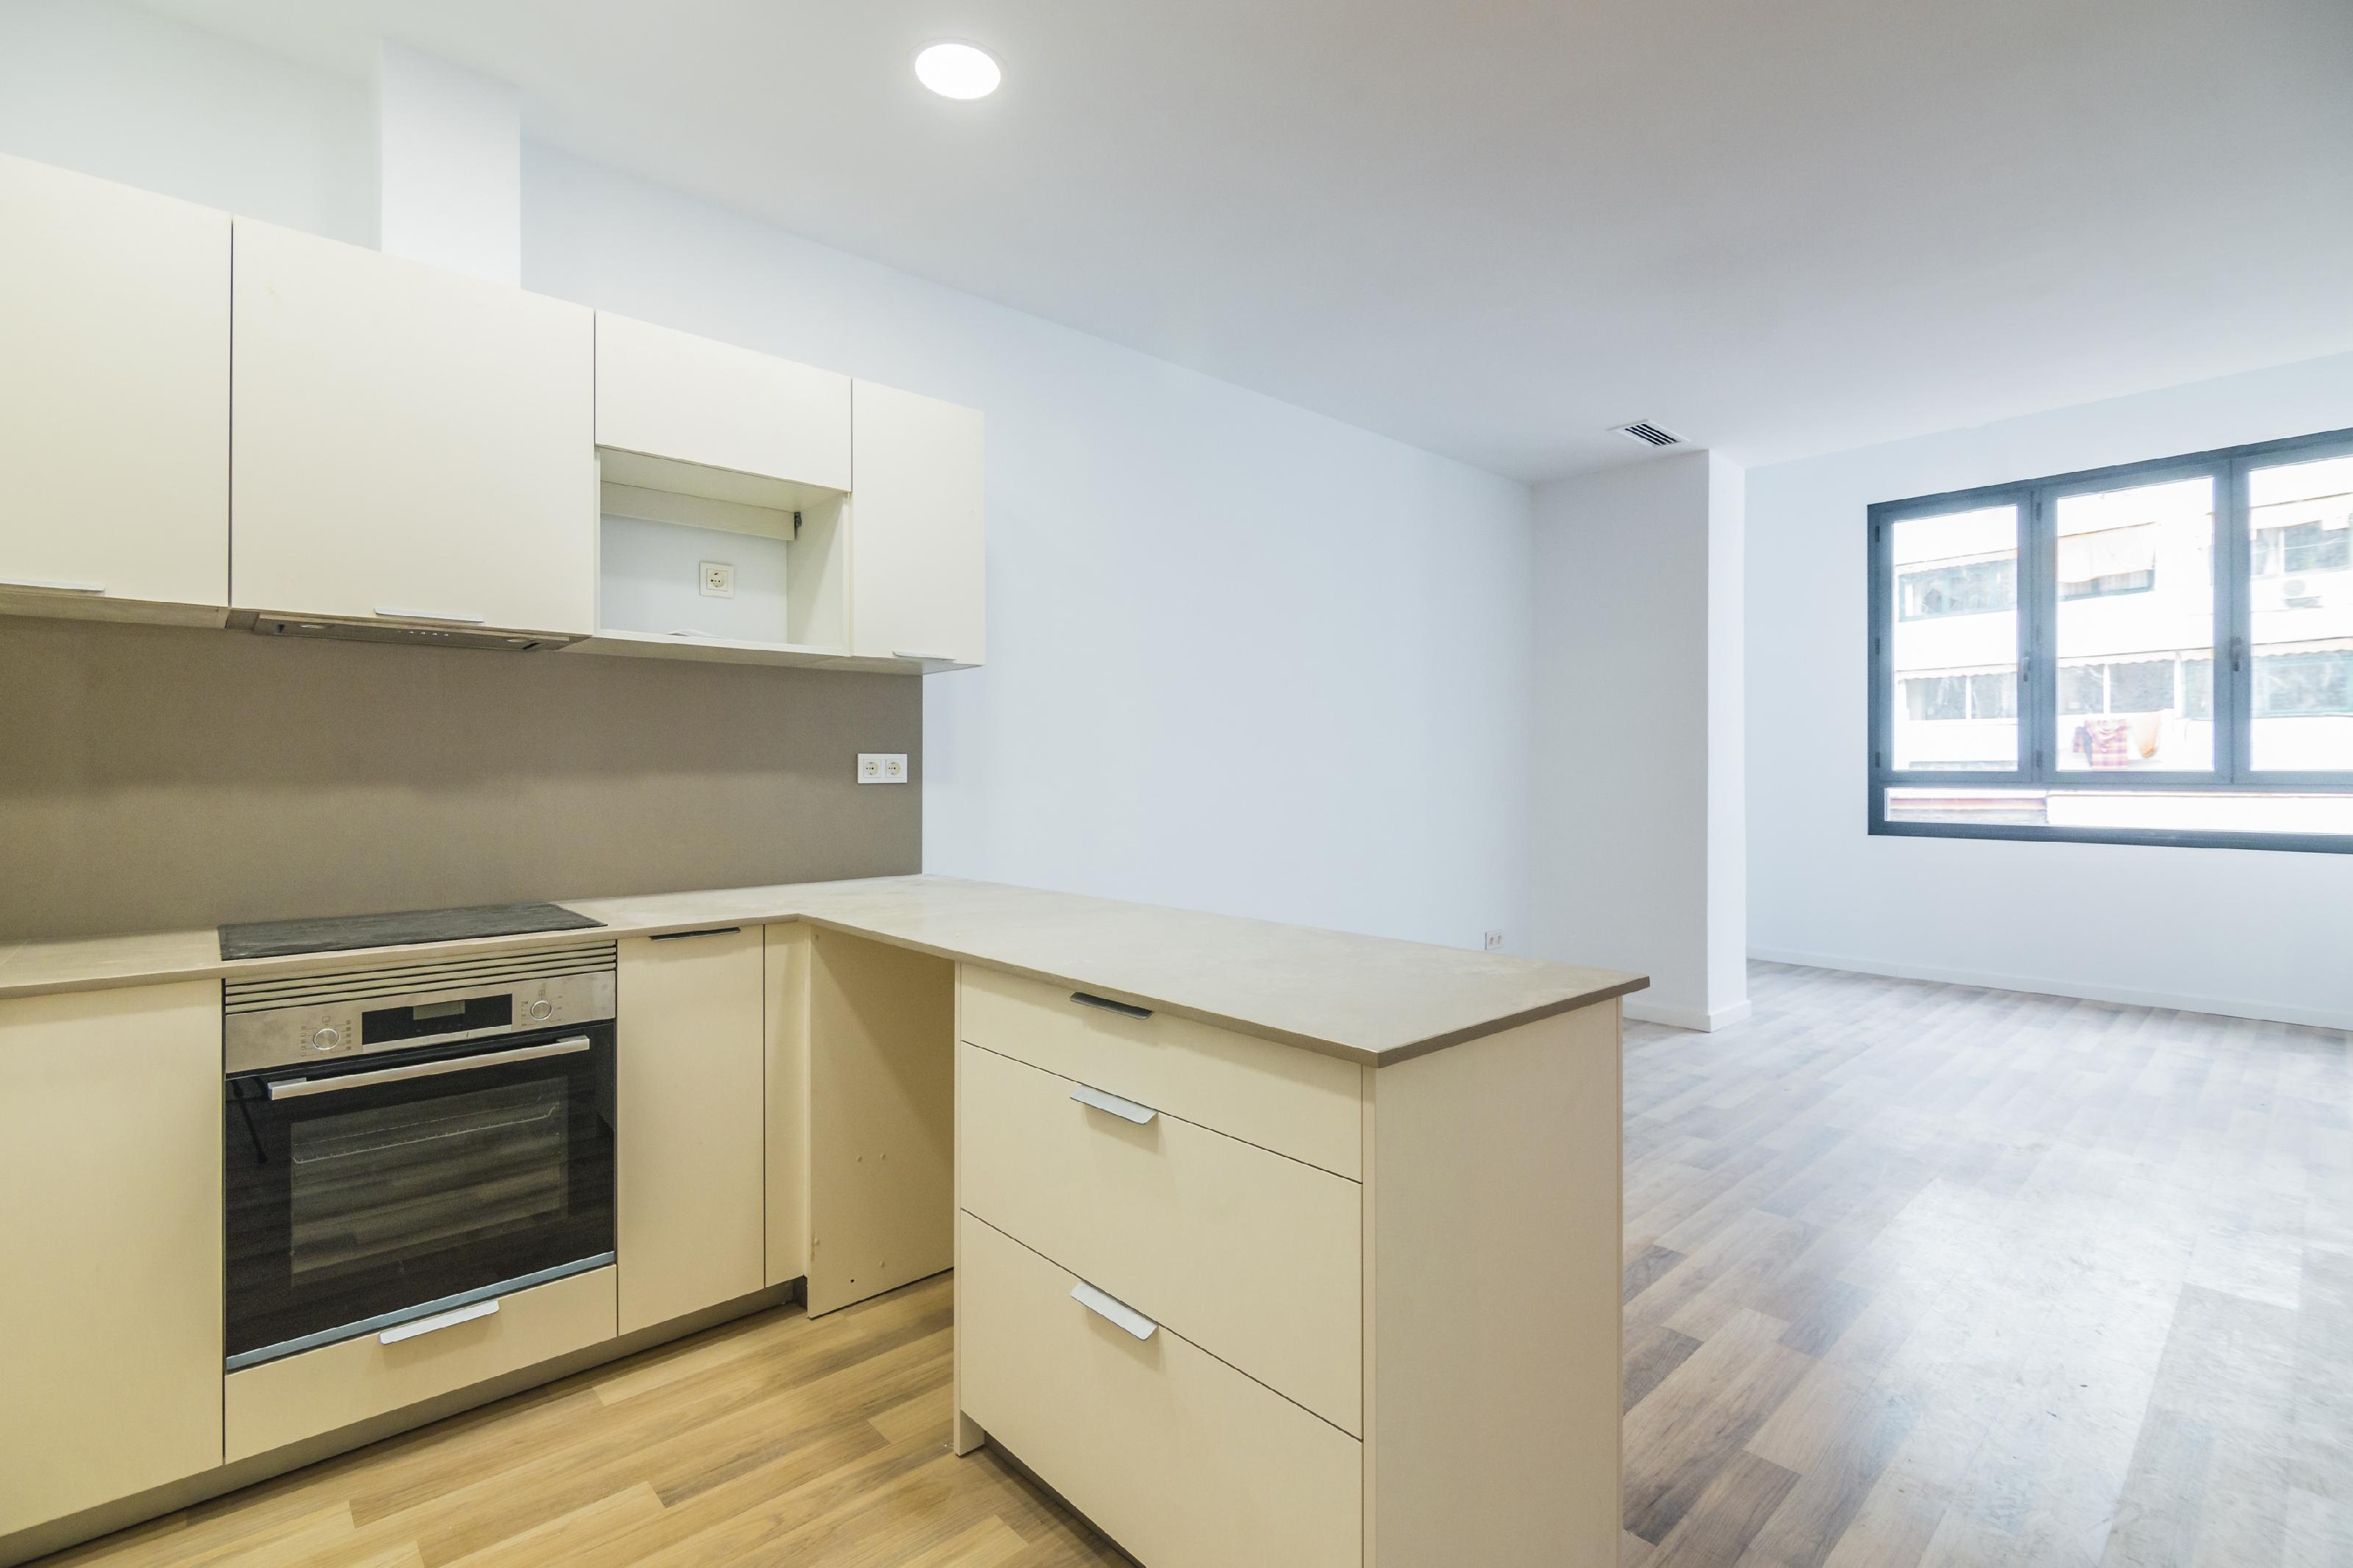 220652 Apartment for sale in Sarrià-Sant Gervasi, Sant Gervasi-Galvany 2